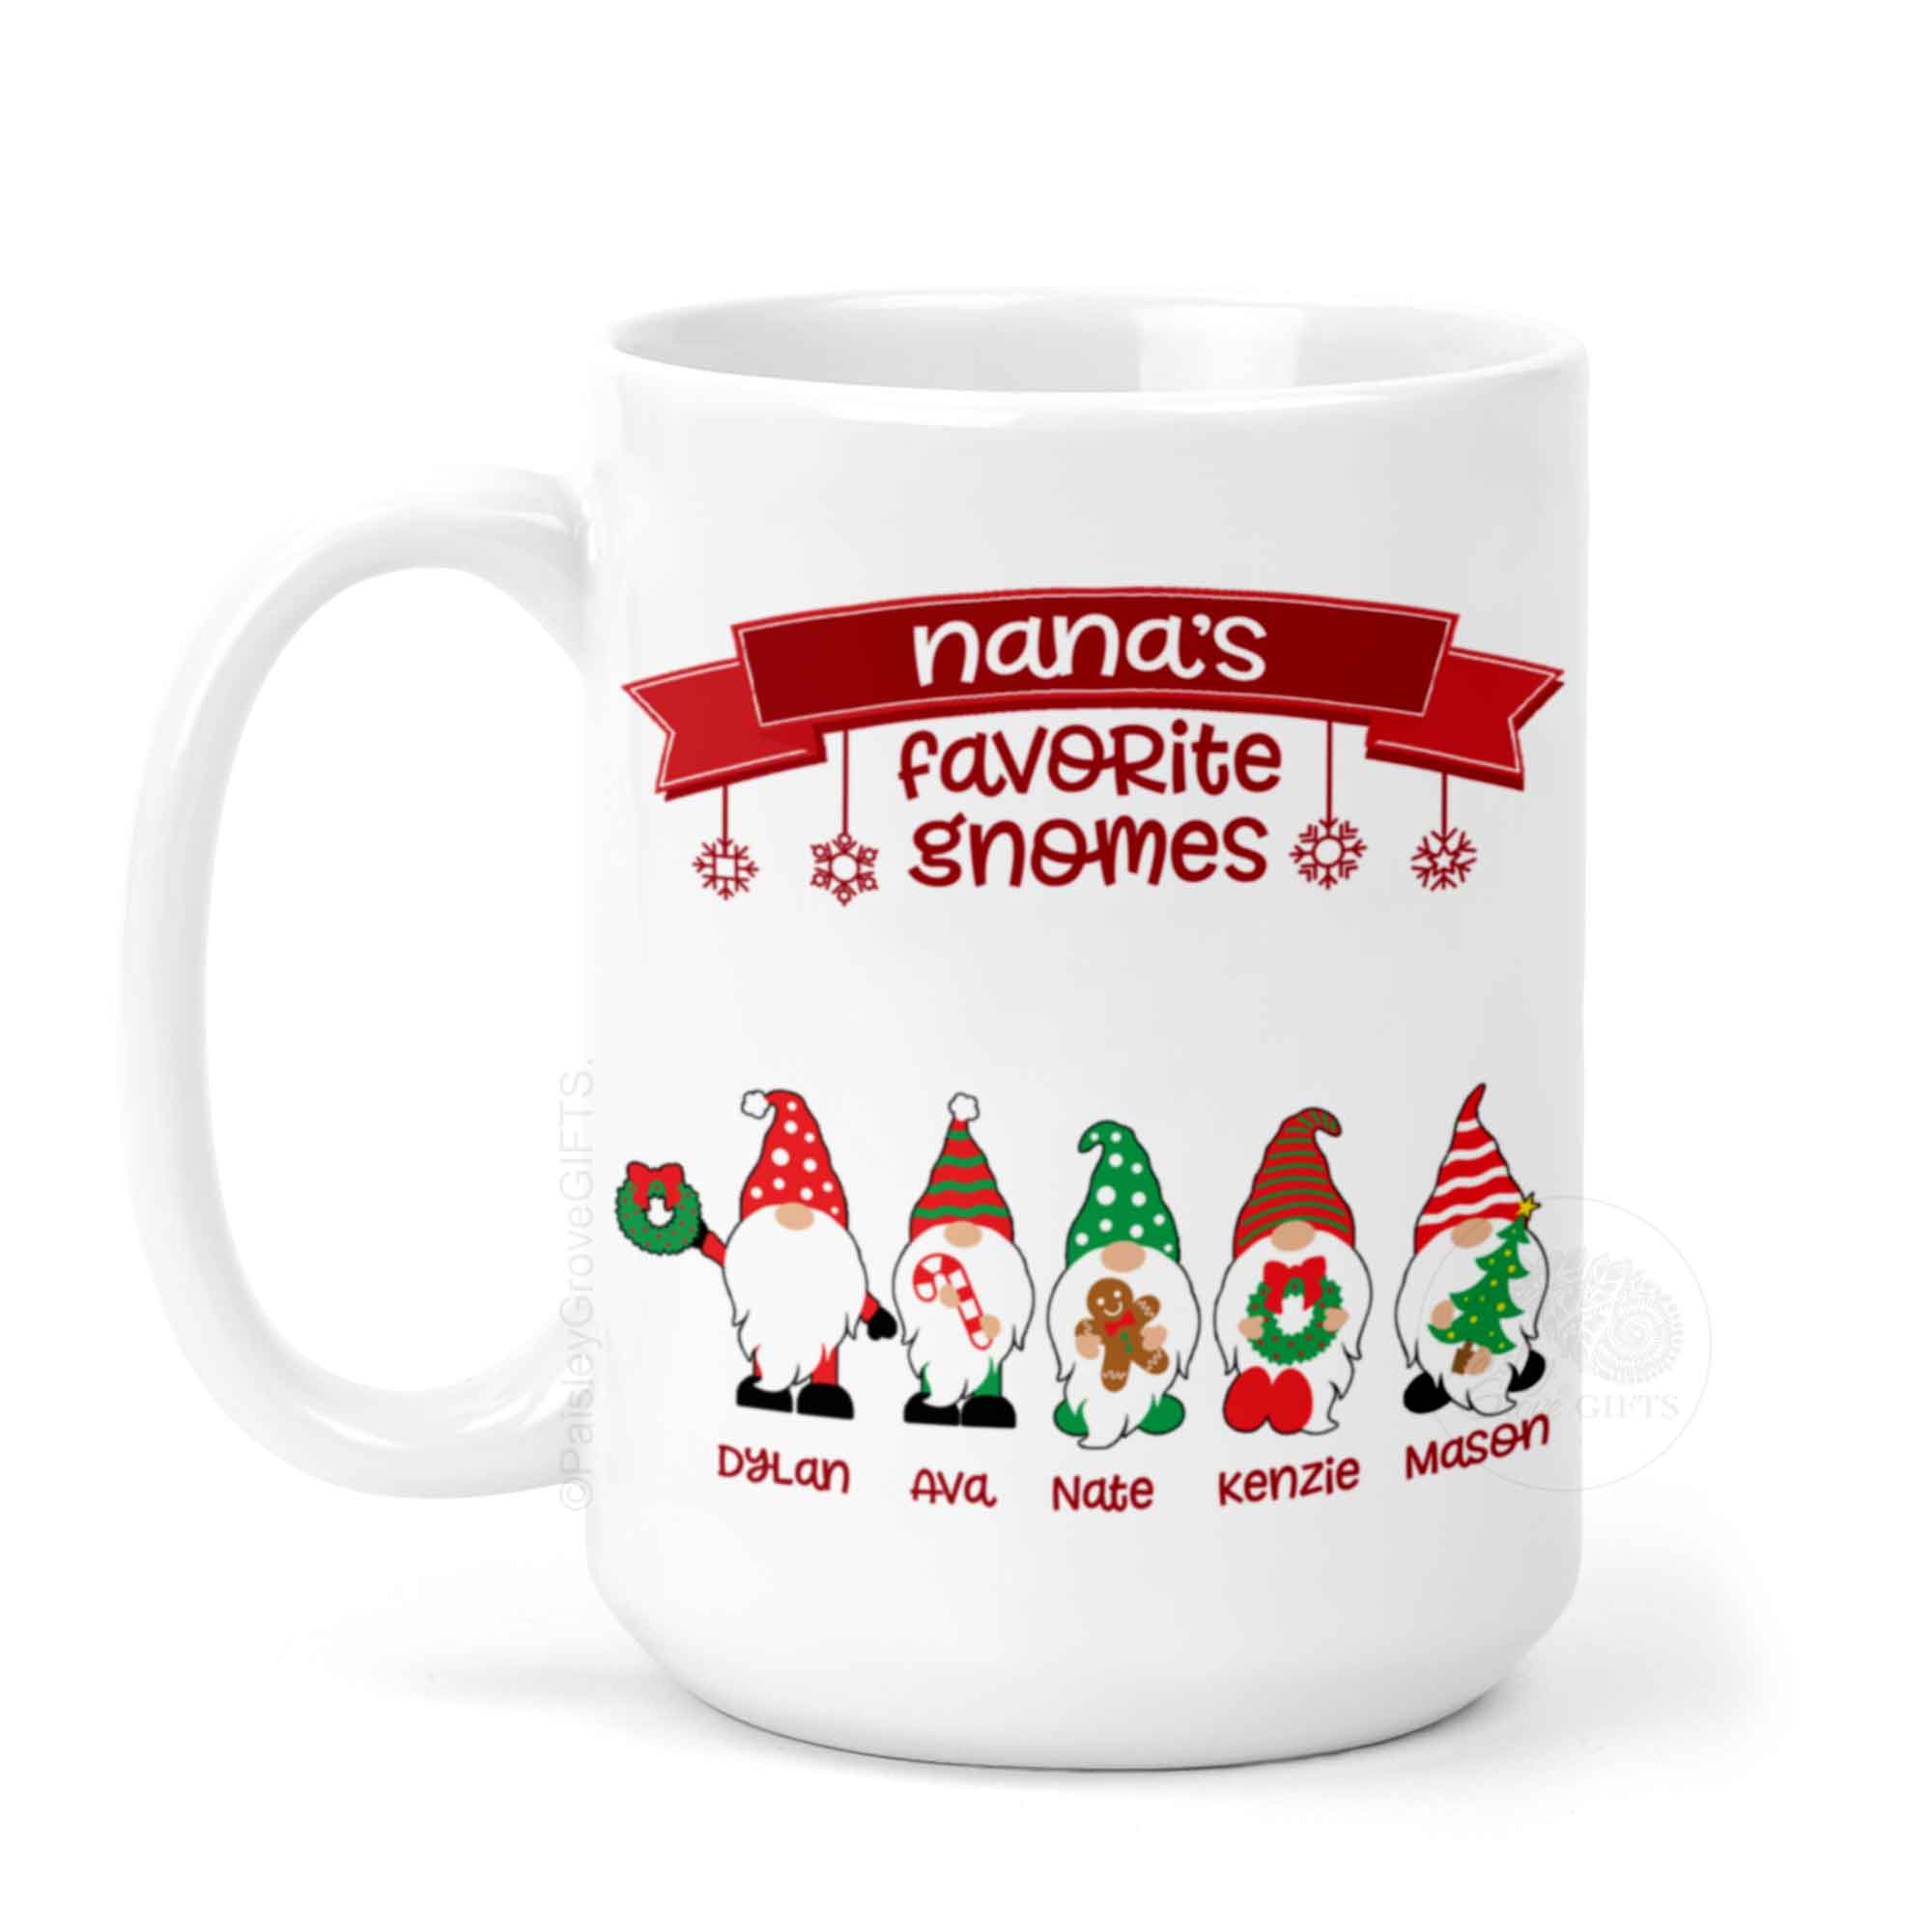 CopyrightPaisleyGroveGIFTS P010a2 Personalized Grandma Mug with Gnomes and grandkid's names